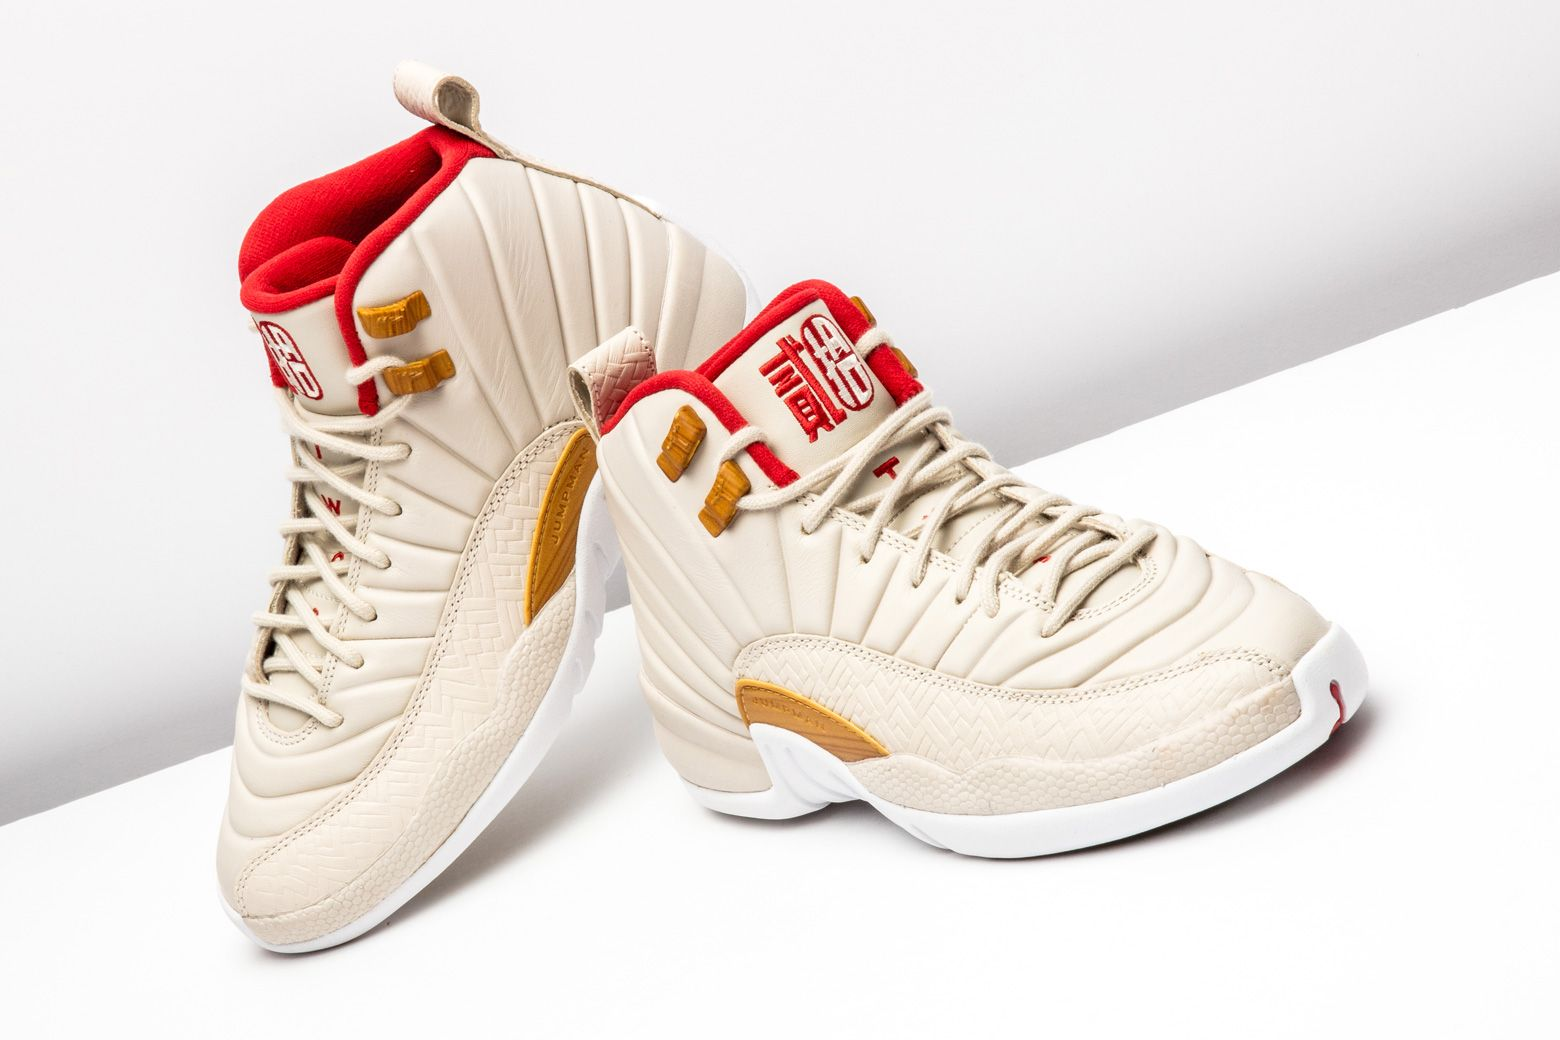 98806d32512 Jordan Brand celebrates Chinese New Year with this clean Air Jordan 12 for  girls. http